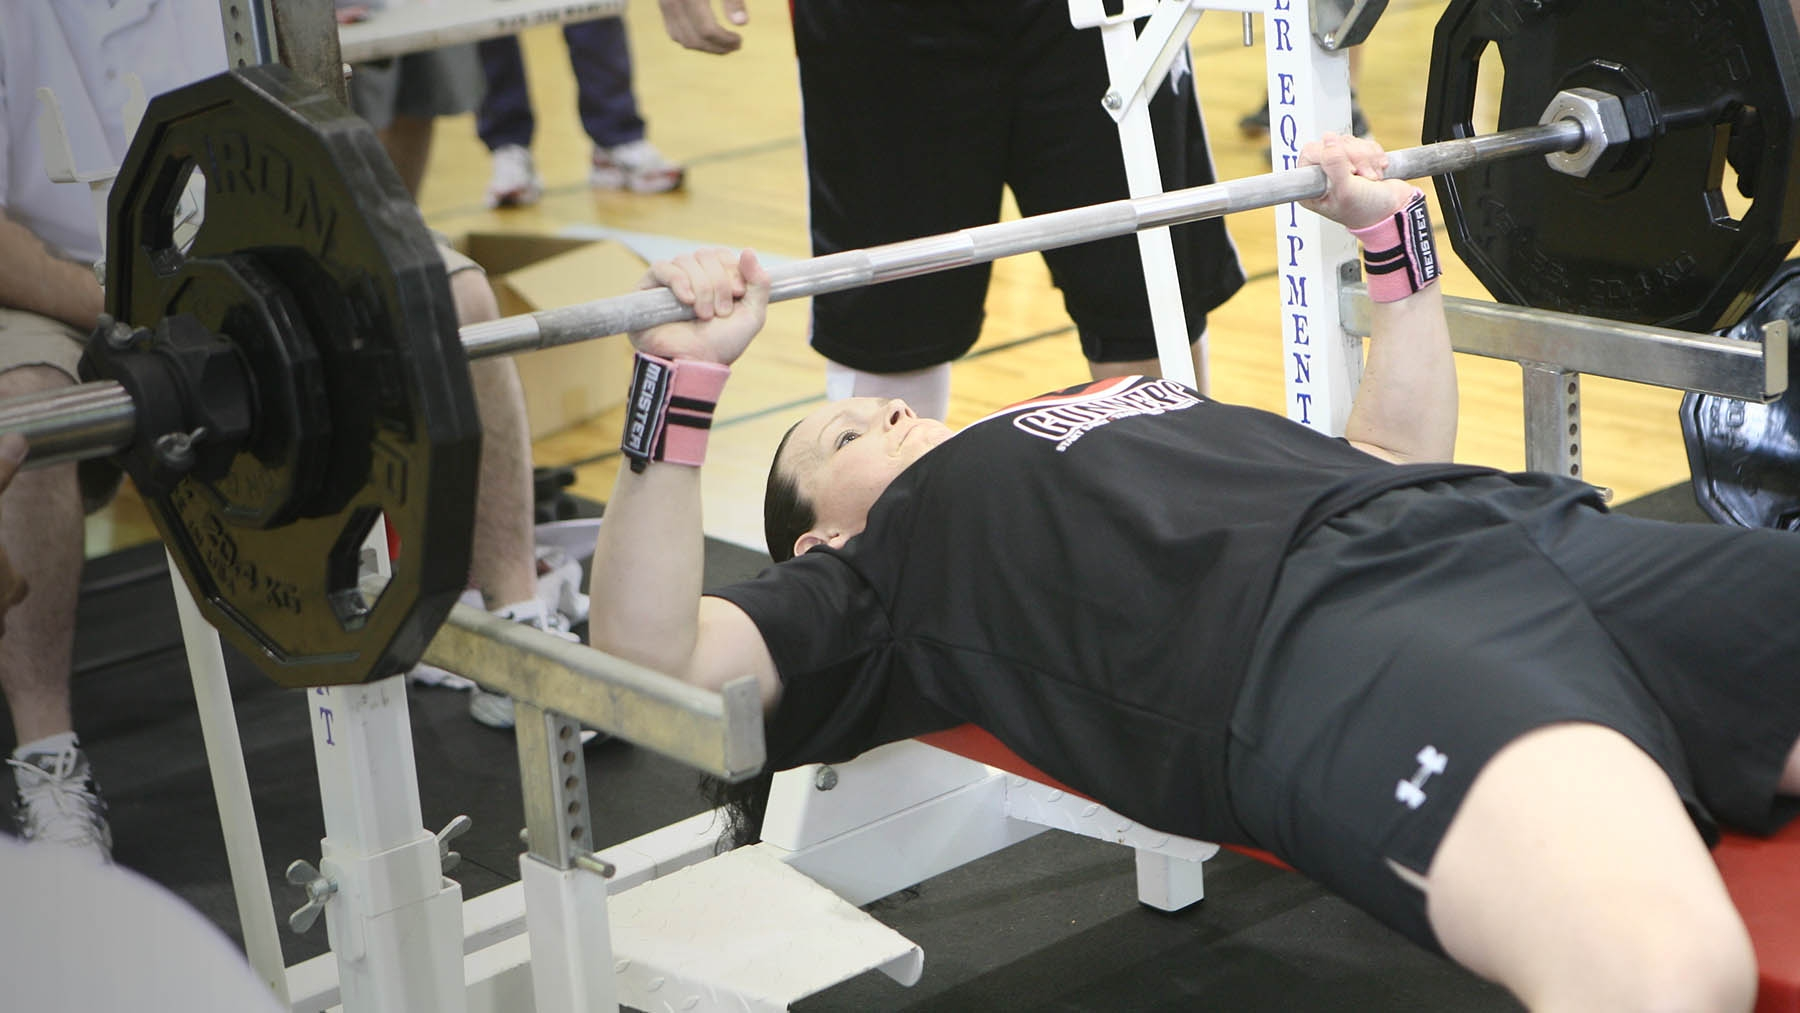 A Marine prepares to lift a weighted barbell as her spotter looks on.